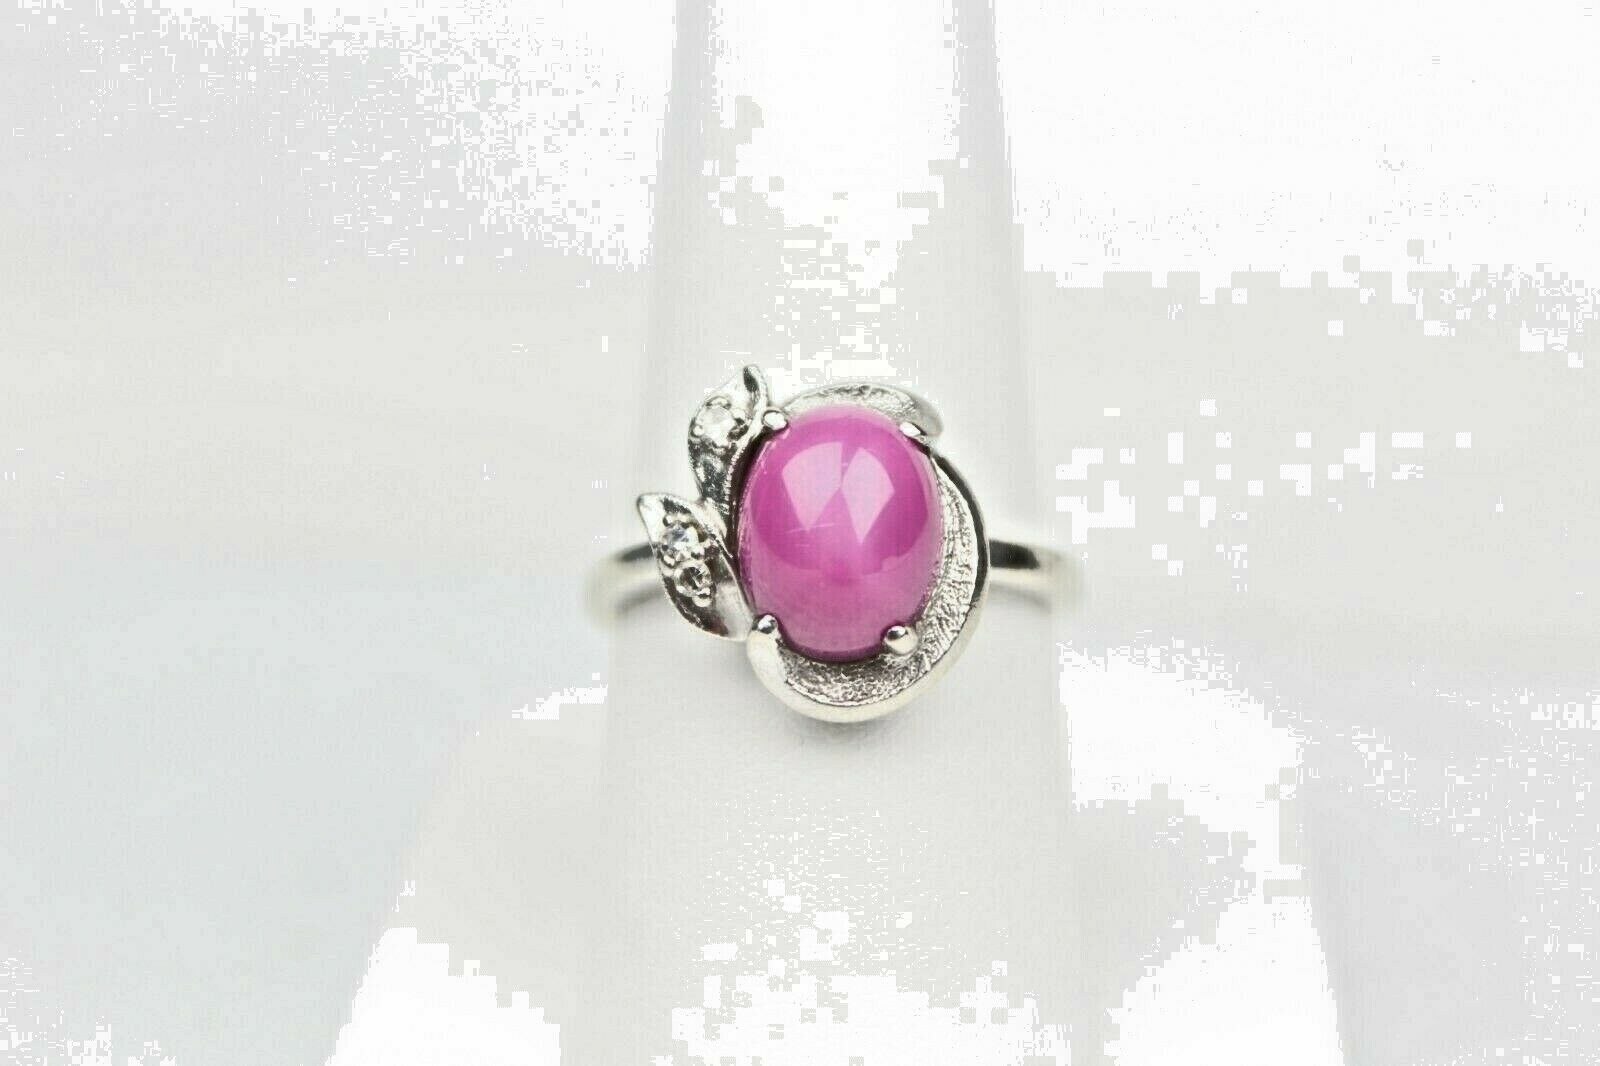 14kt White gold Ruby Star Sapphire With 3 Accent Diamonds Ring Size 7 1 2